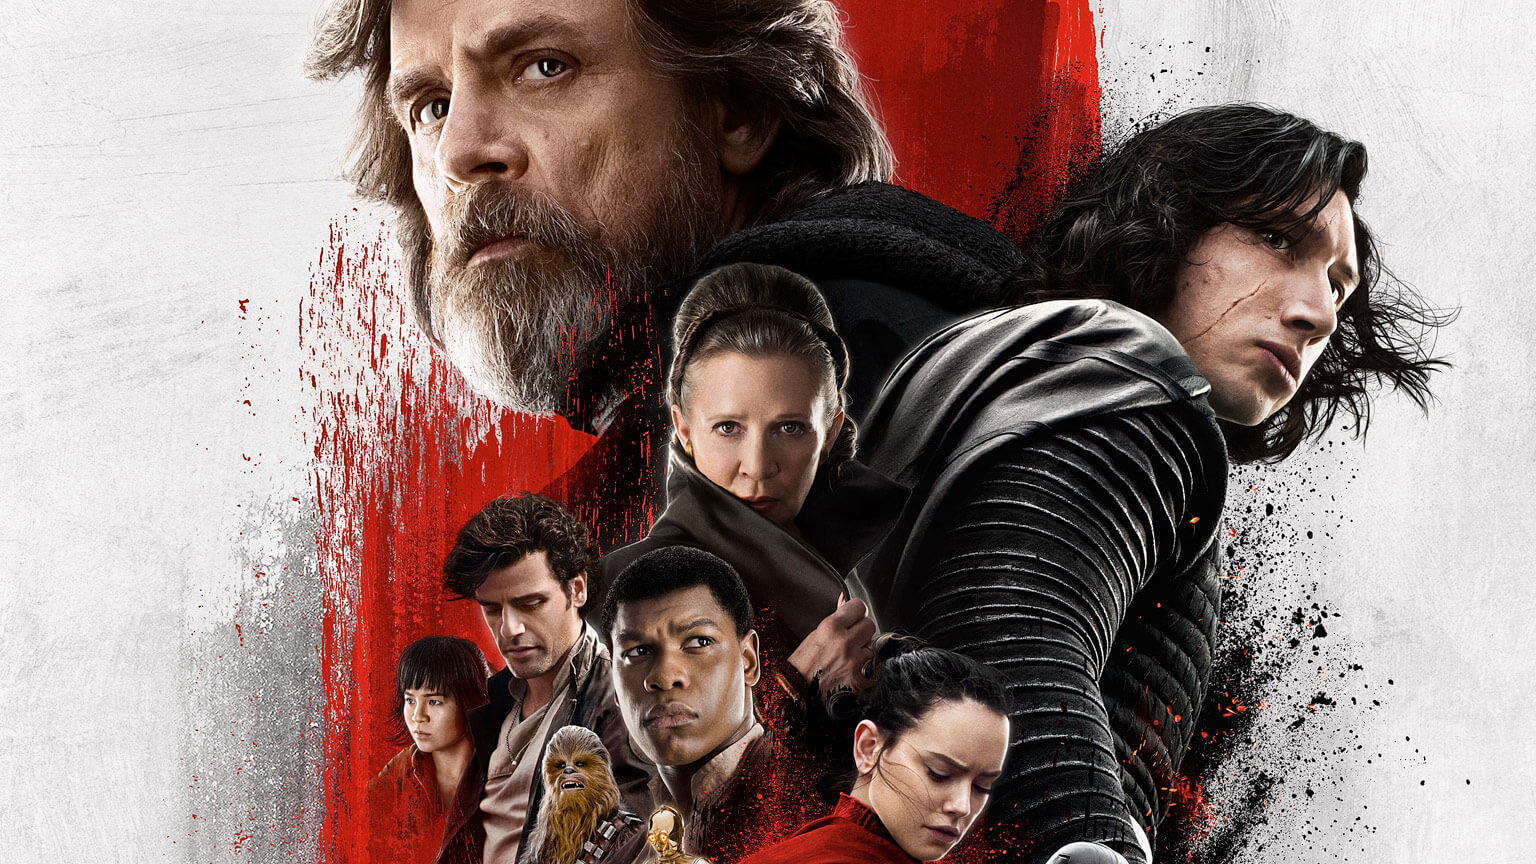 Theater hosting kid-friendly activities during opening weekend of 'The Last Jedi'